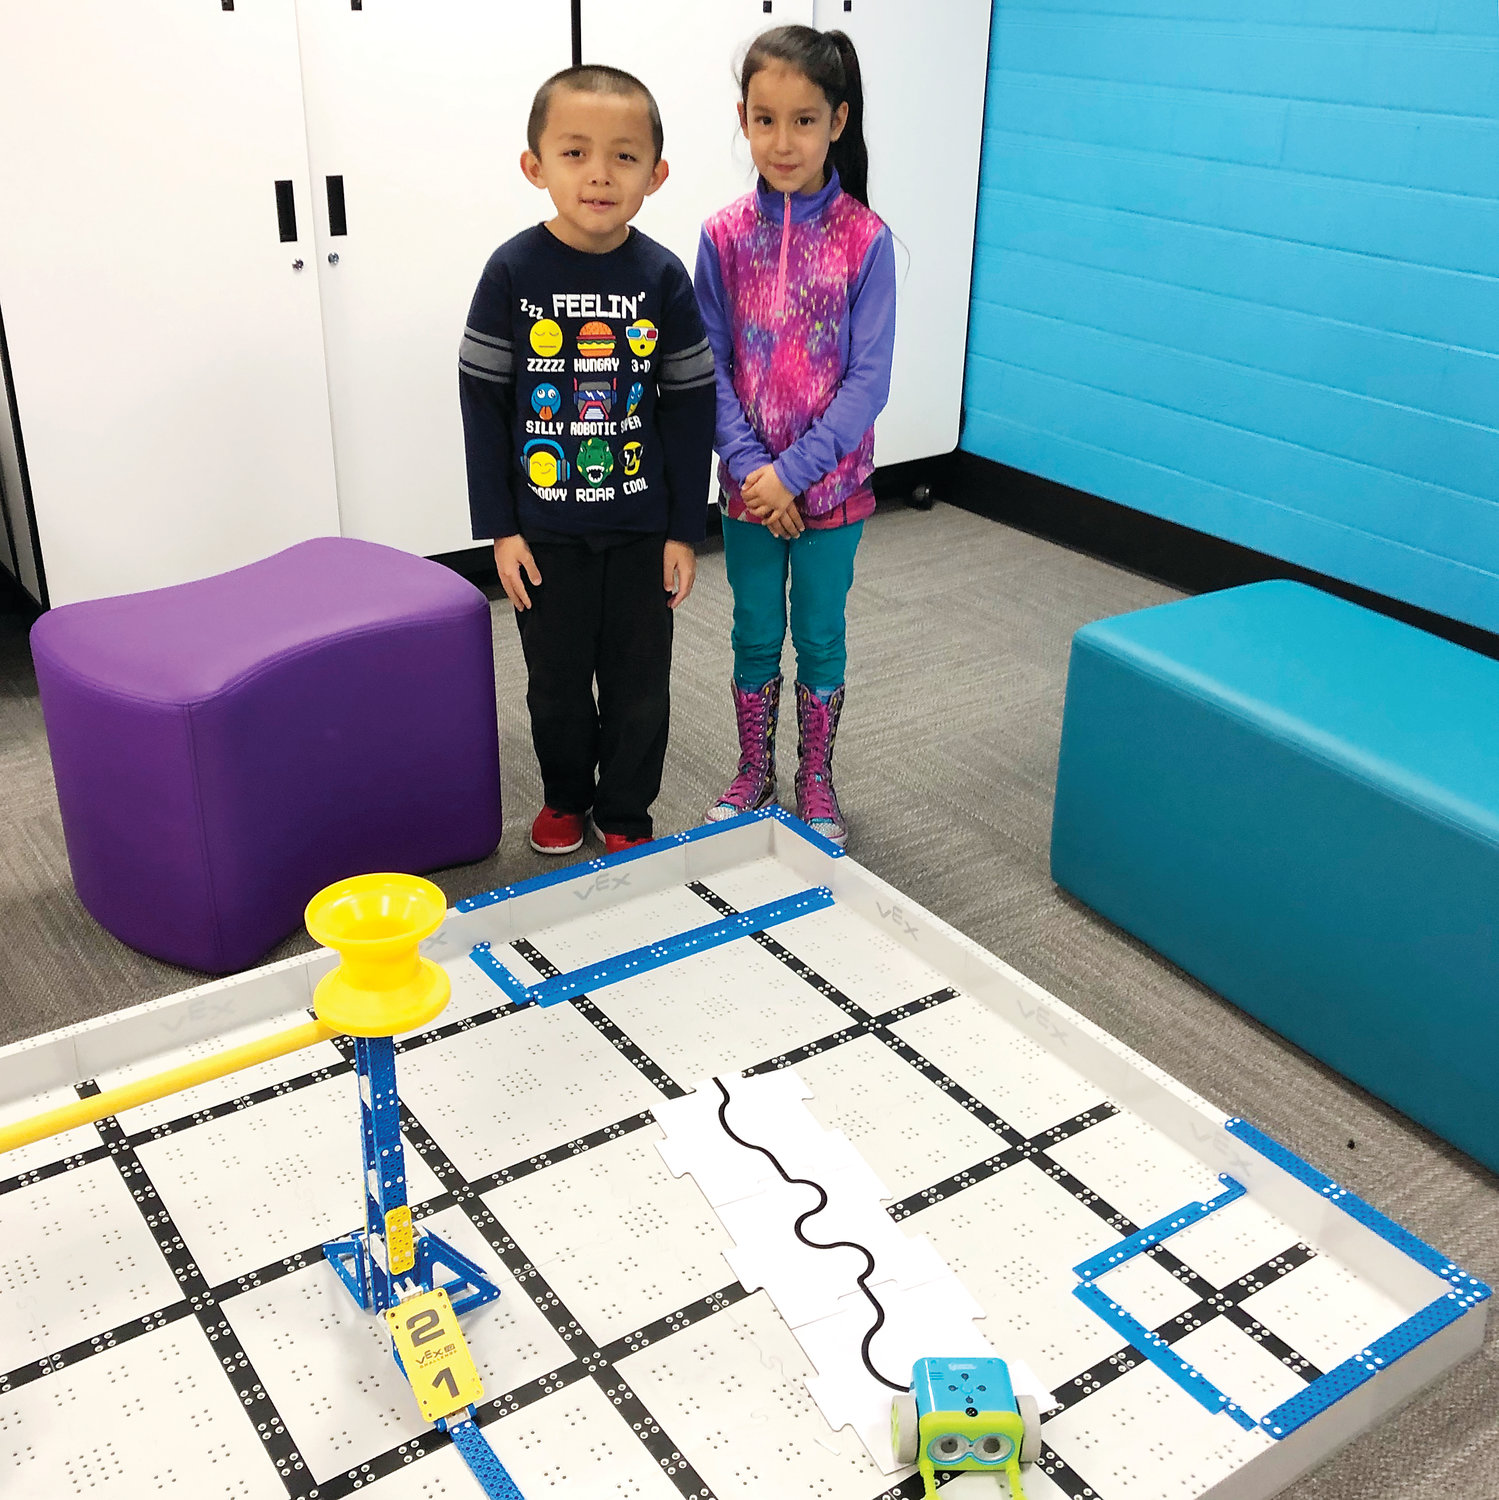 What Is Stem Lab In School: 'Freedom At Last': Students Excited About New STEM Labs